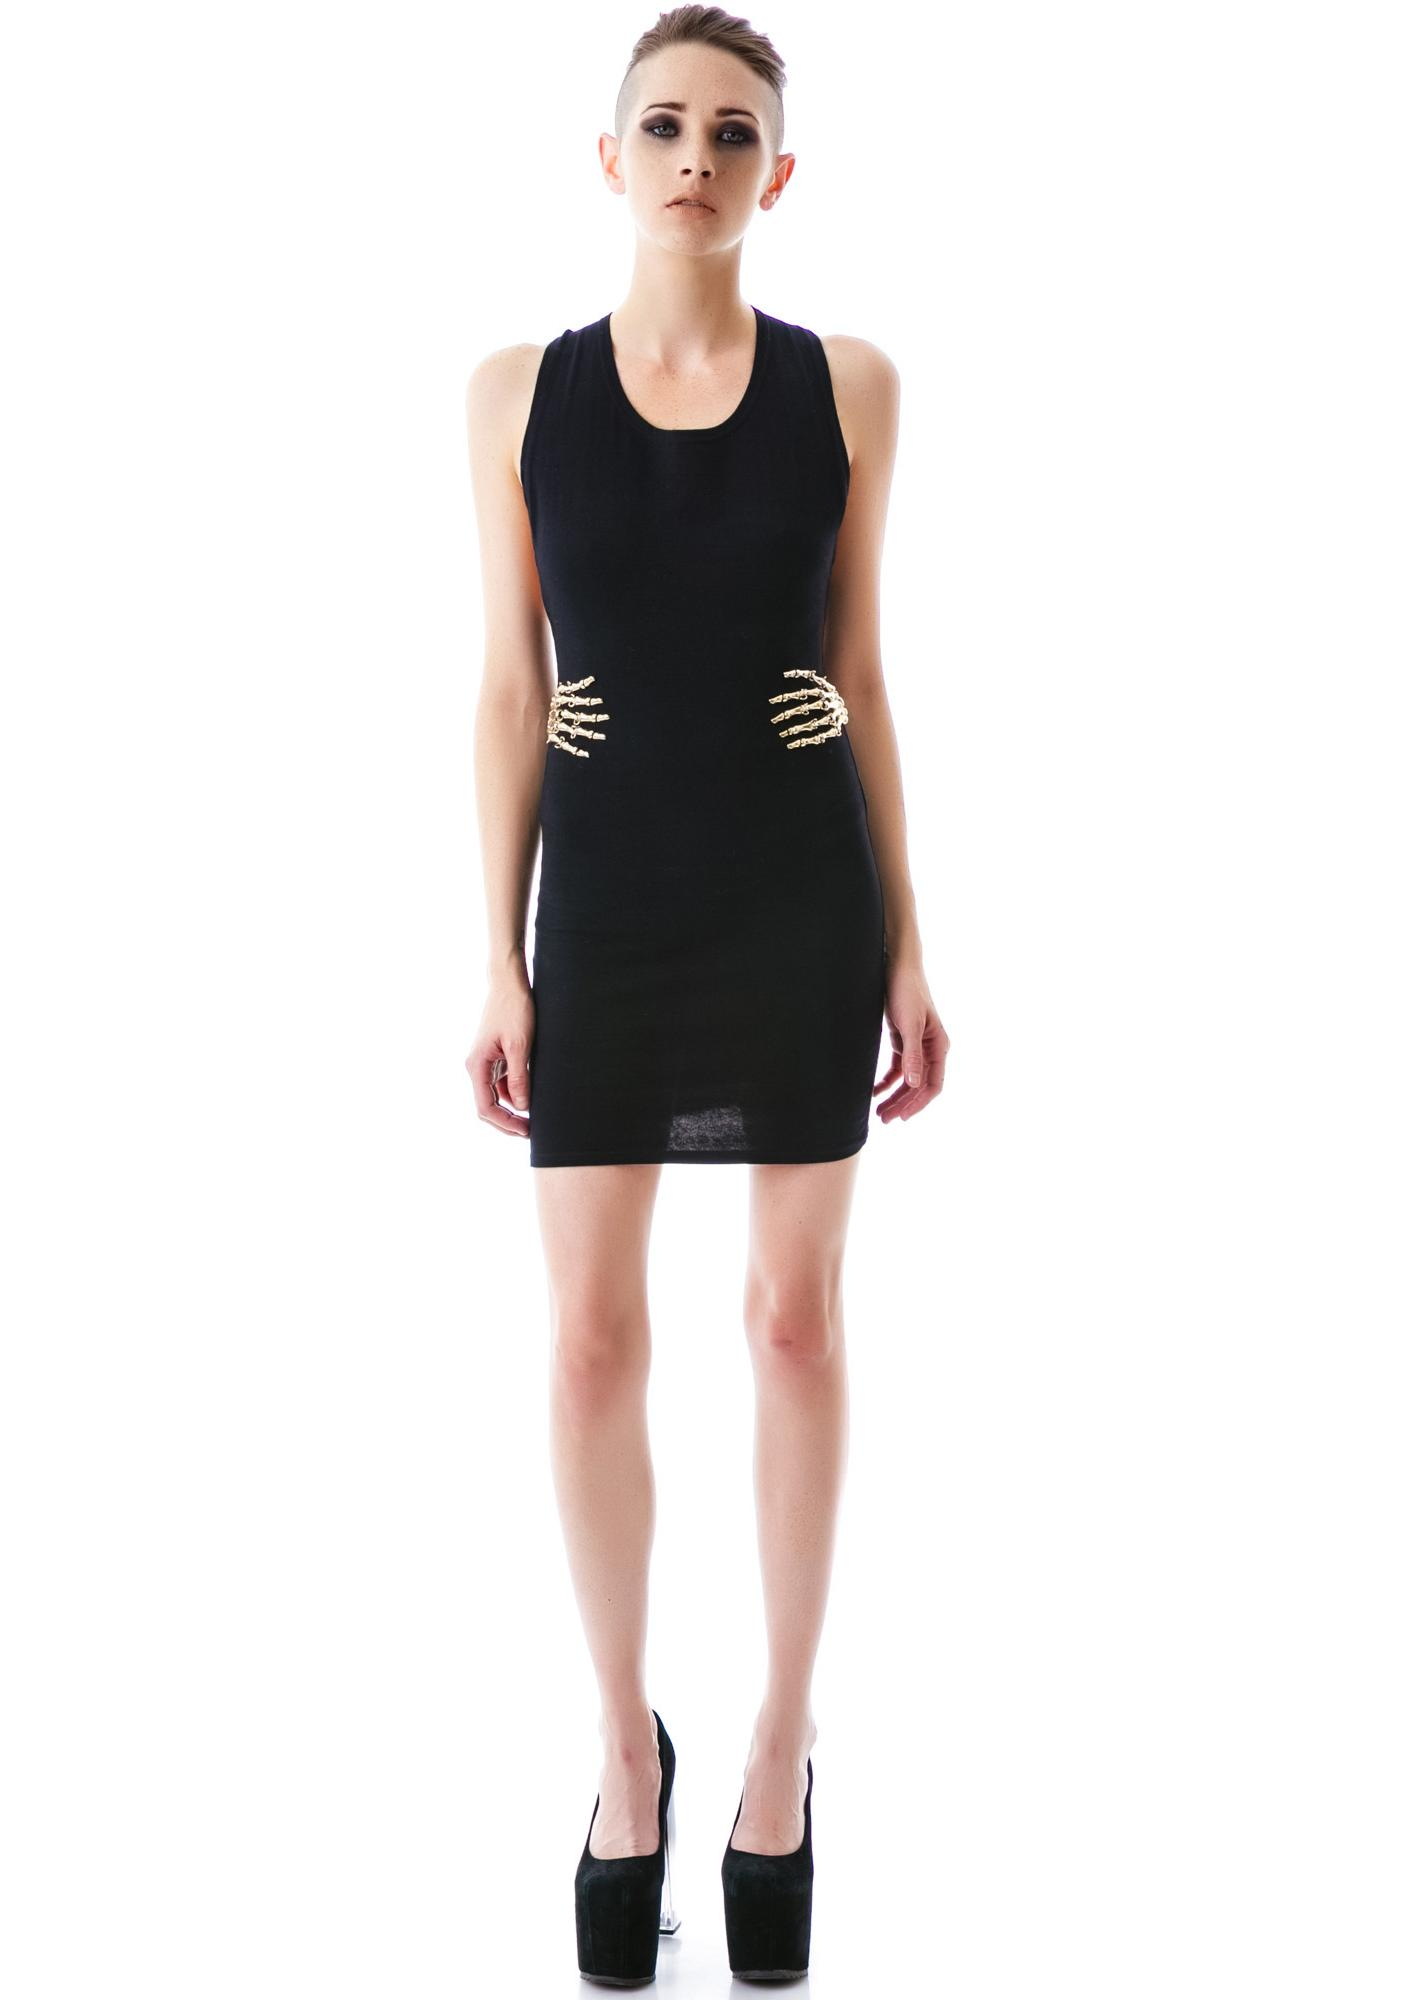 The Claw Dress